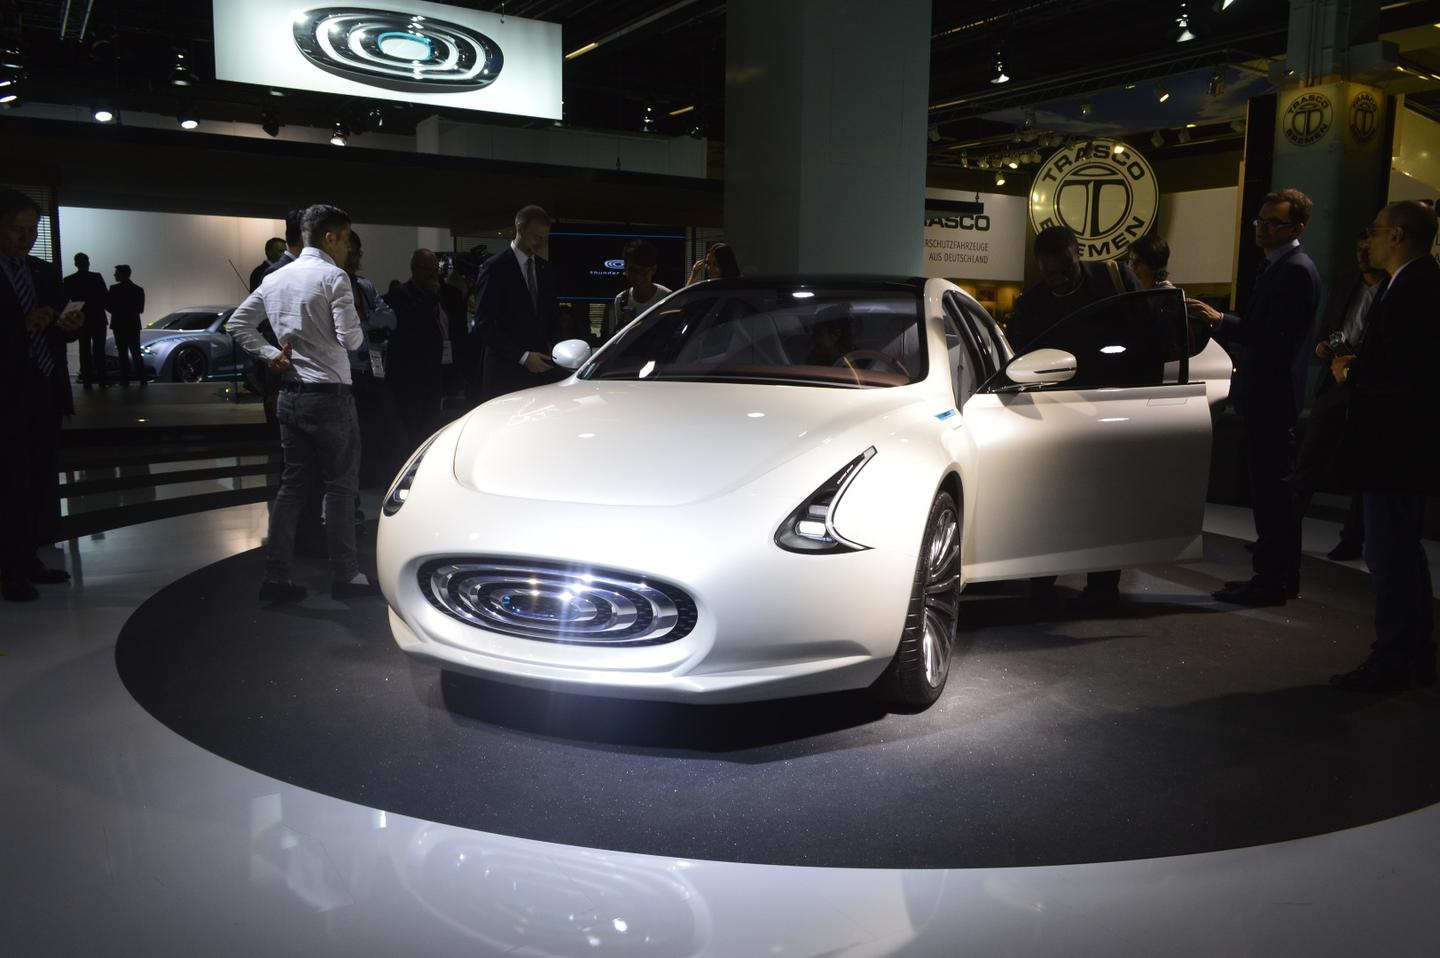 The Thunder Power Sedan is a rear-drive, all electric luxury car out of Taiwan